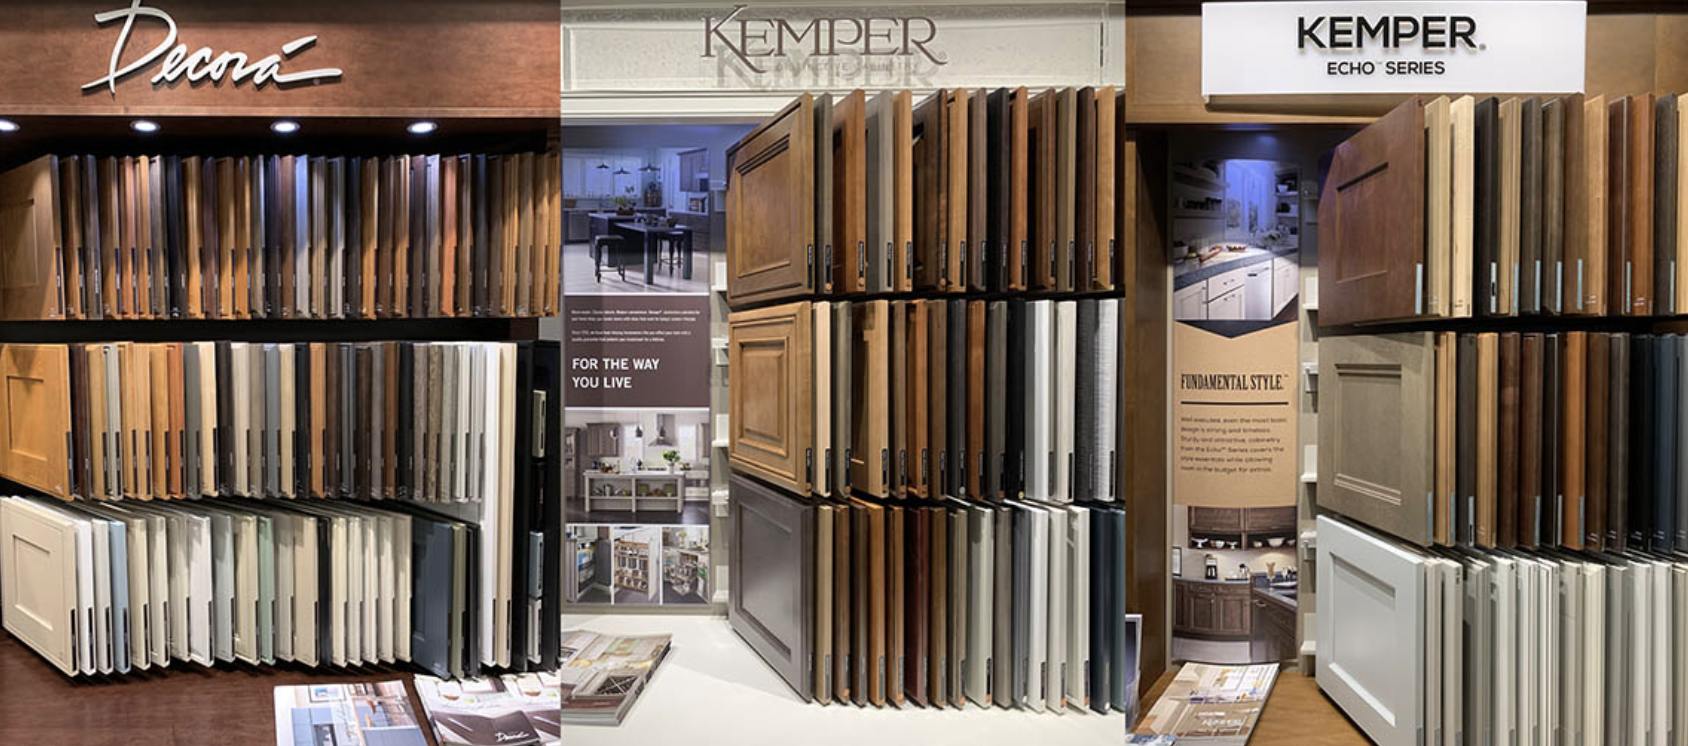 Best-selection-of-decora-and-kemper-cabinets